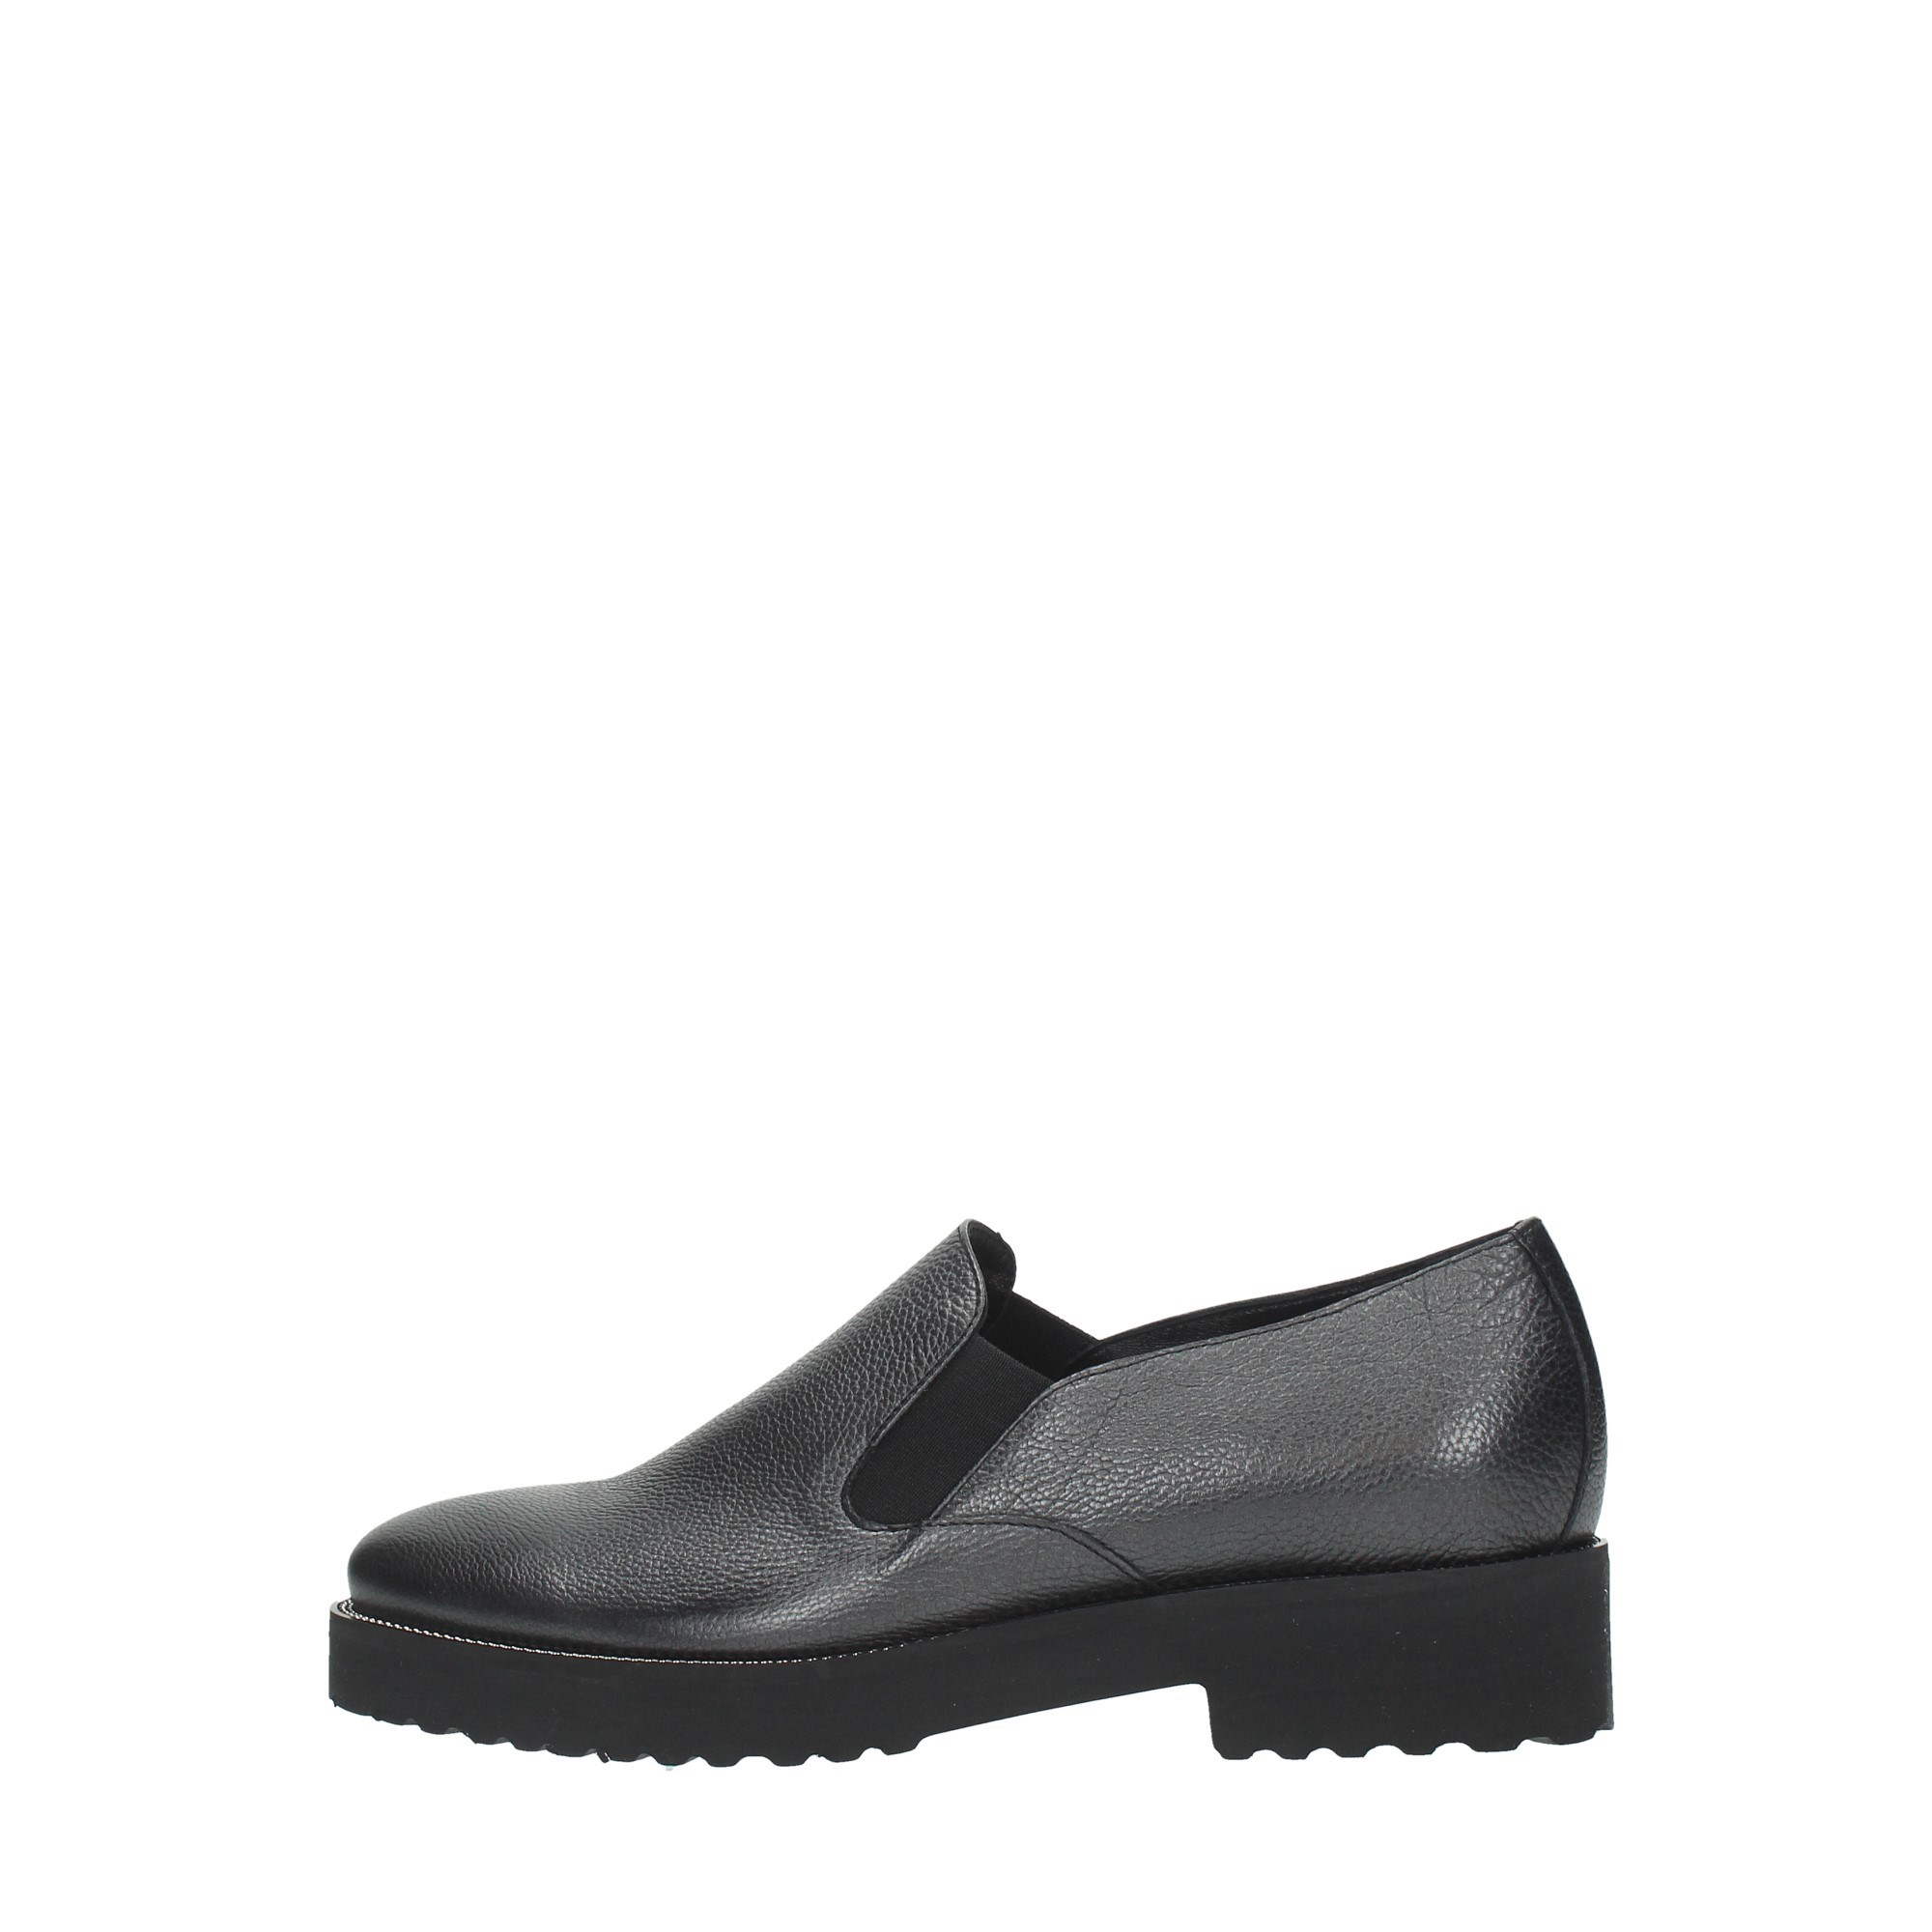 Luca Grossi Shoes Women Moccasins And Slippers Black B086M